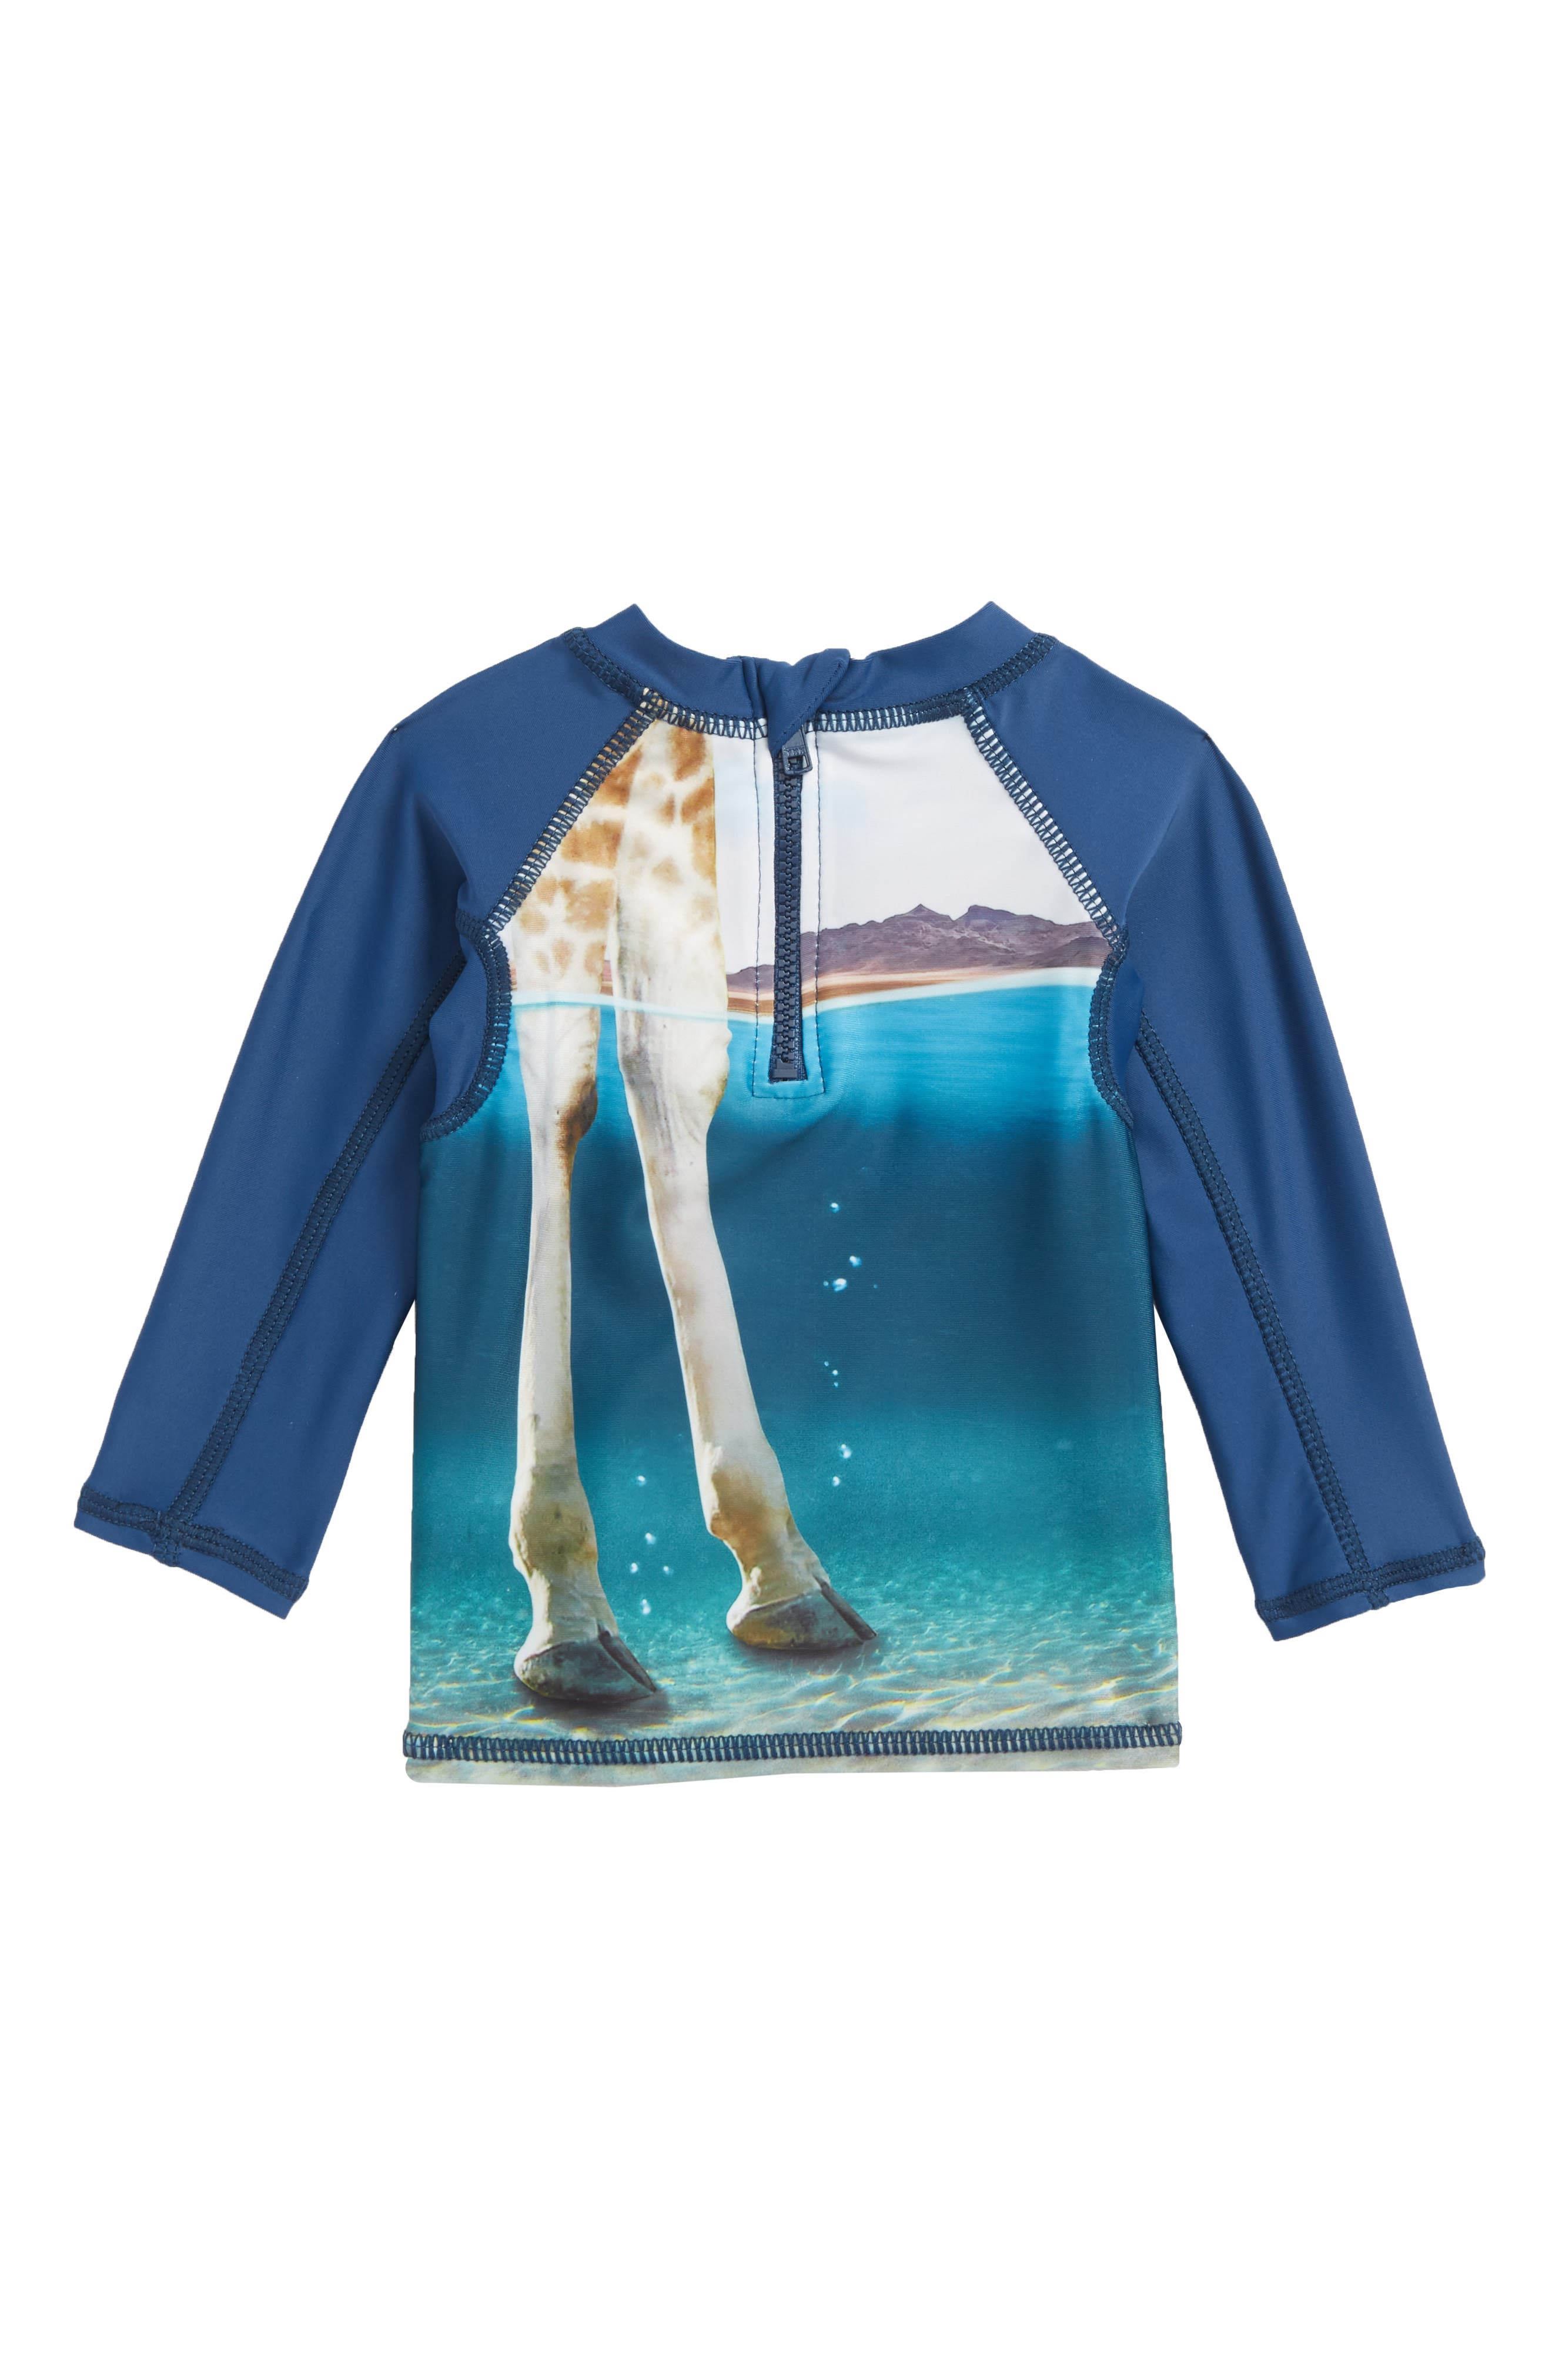 Nemo Rashguard,                             Alternate thumbnail 2, color,                             Giraffe